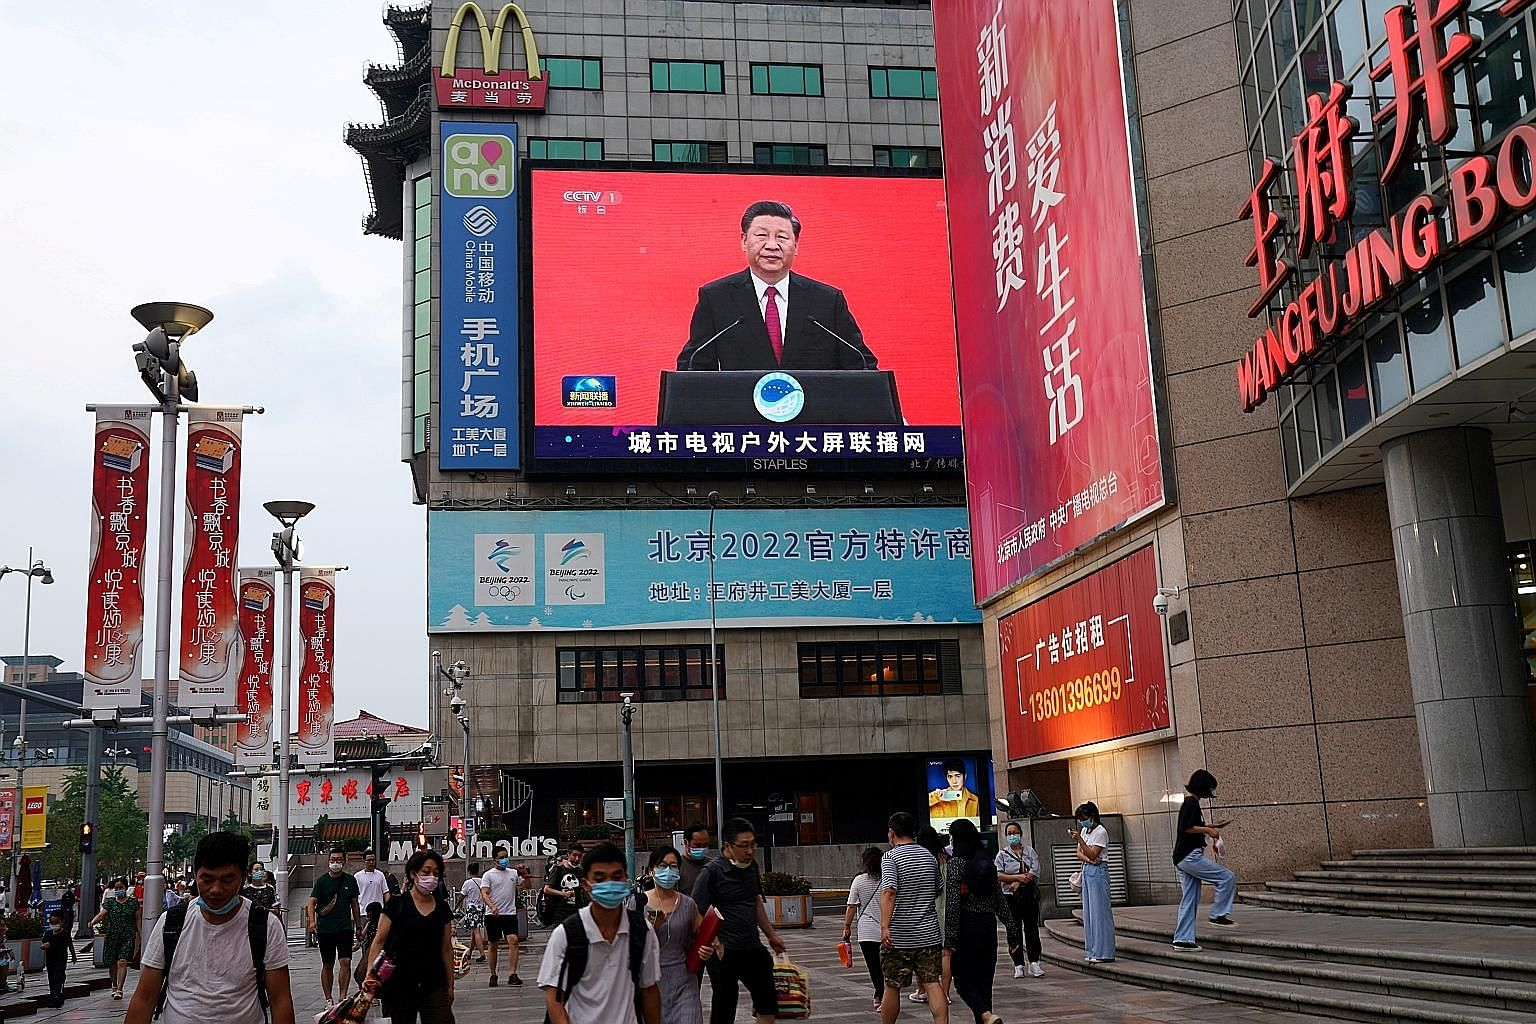 Compared with Mr Donald Trump, who has increasingly been cast by Chinese state media as having gone off his rocker, President Xi Jinping (seen here in news footage in Beijing last month) is seen as being above the fray and busy with tending to domest